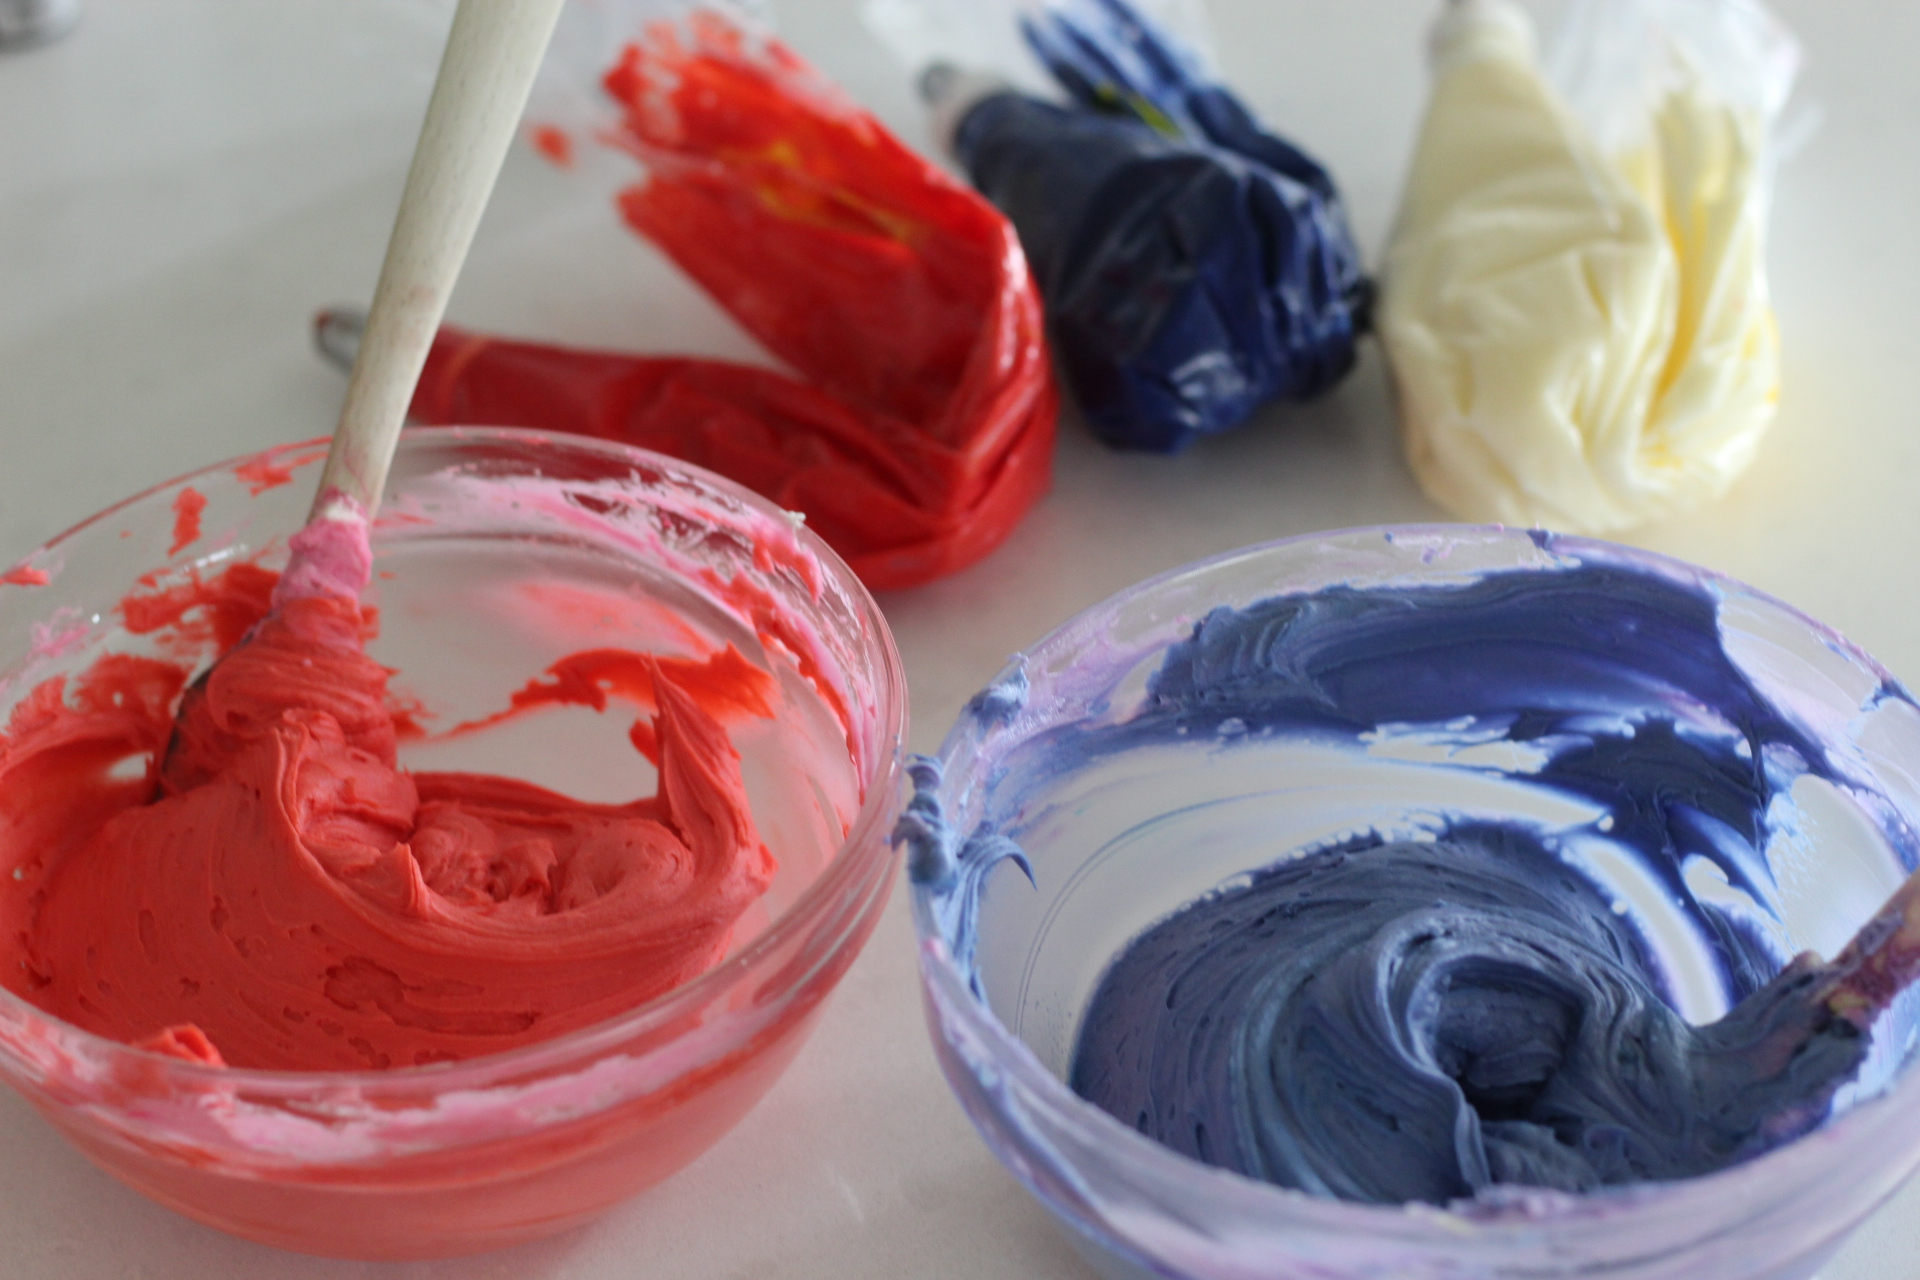 How to Make Red and Blue Buttercream That Won't Stain Your Teeth - all the tips and tricks for making red and blue buttercream that won't stain your teeth and tastes delicious. #redbuttercream #bluebuttercream #howtomakeredbuttercream #howtomakebluebuttercream #howtomakebuttercreamfrosting #howtocakeit #howtomakefrosting #howtomakeredfrosting #howtomakebluefrosting #fourthofjulycakes #4thofjulycakes #desserts